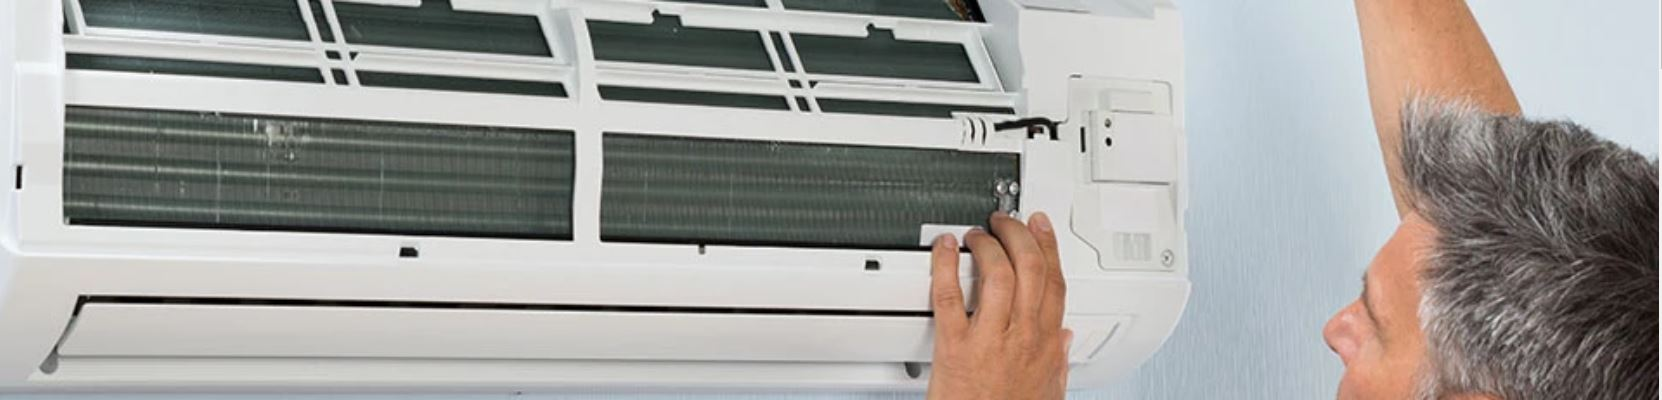 Troubleshooting Tips for Ductless Air Conditioners